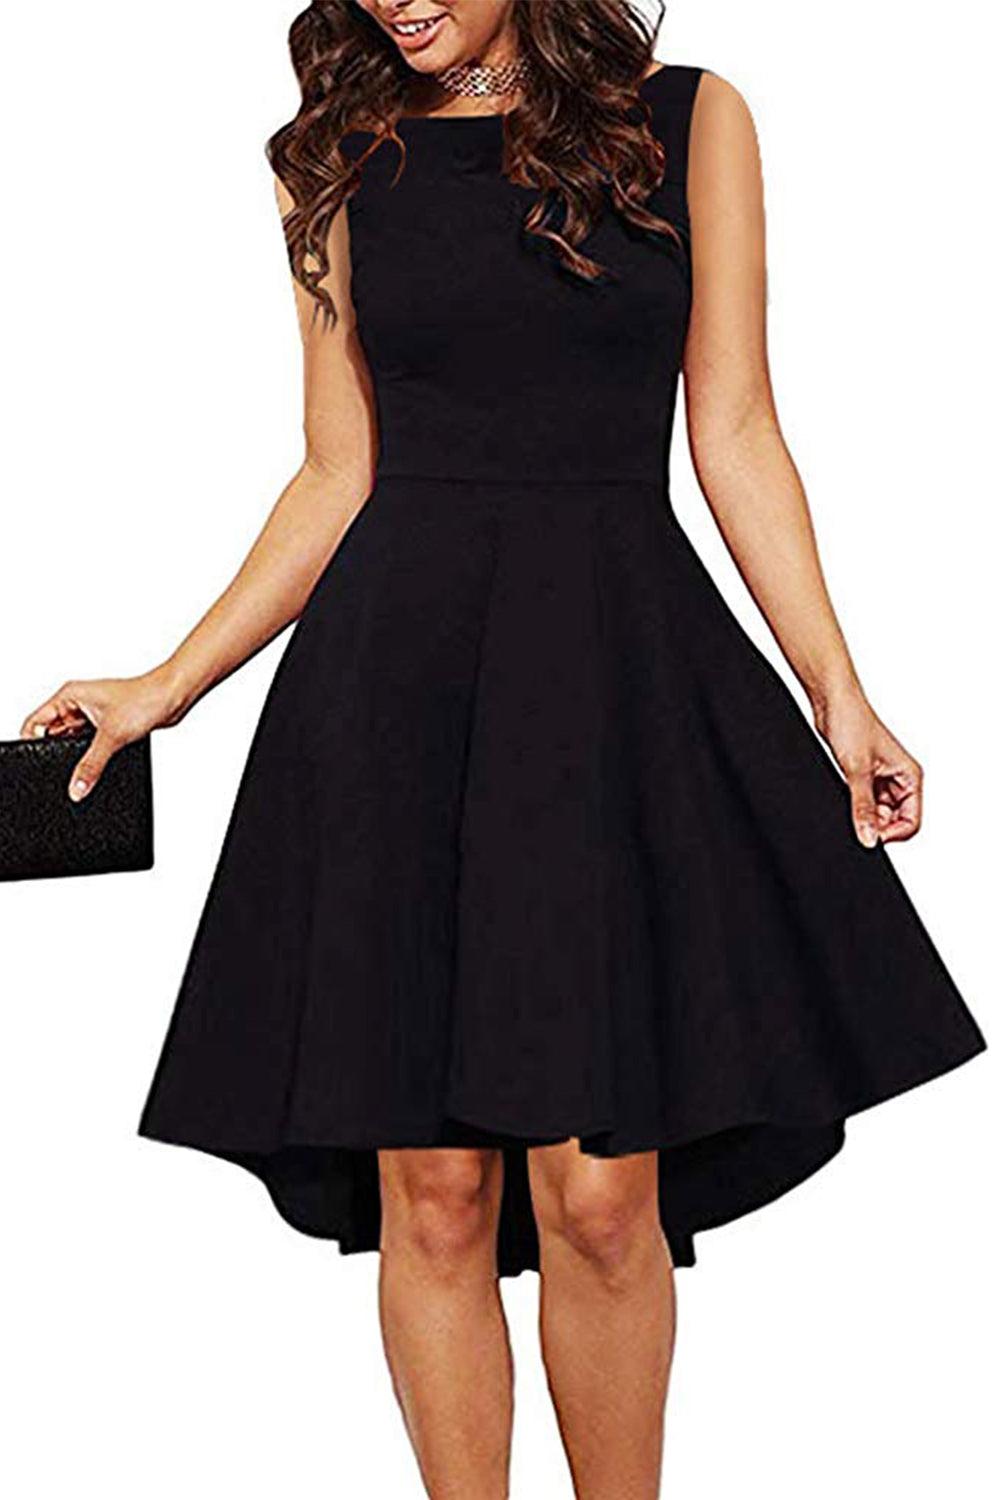 Sleeveless Her Fashion Black Gorgeous High Low Slim Fit Skater Dress